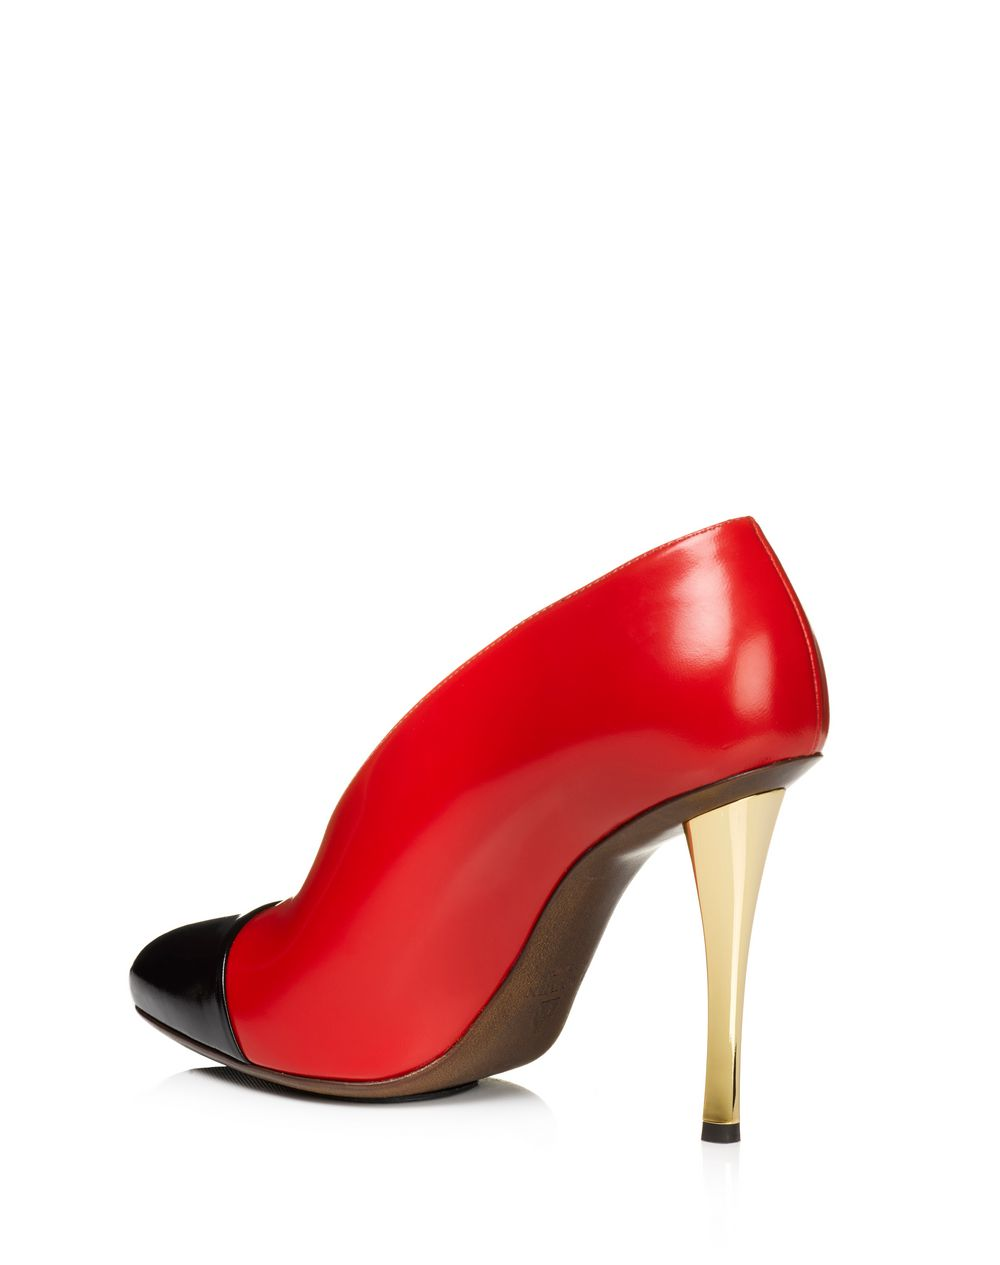 Bicolor stiletto pump - Lanvin